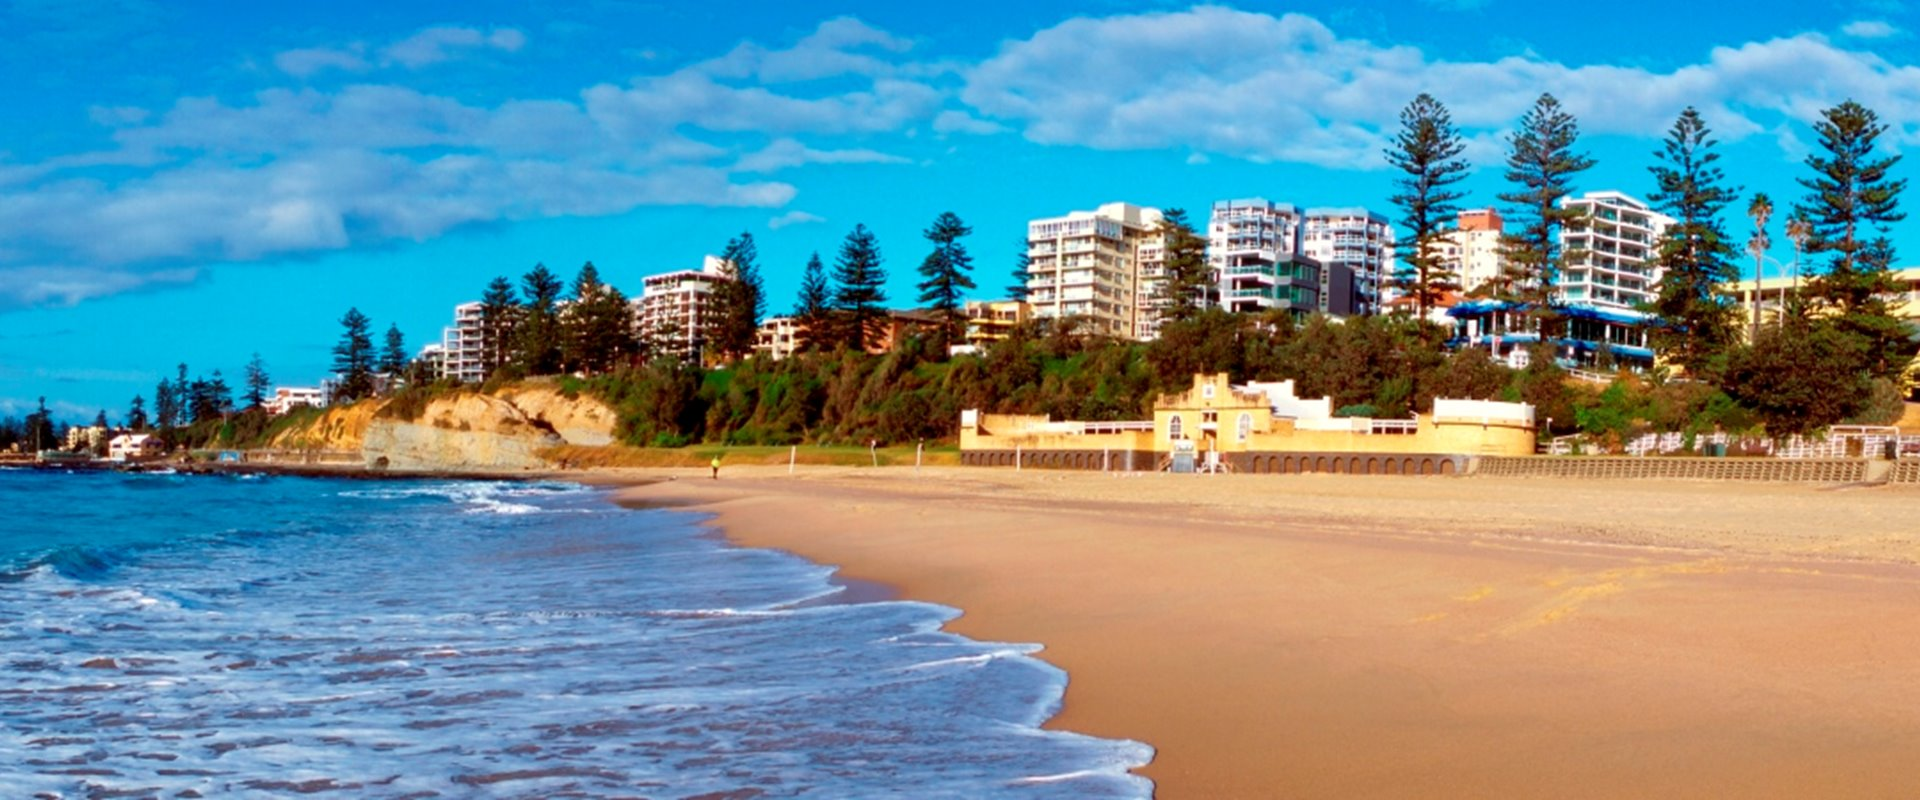 Novotel Wollongong Northbeach | Conference Venues Regional NSW | Conference Venues New South Wales